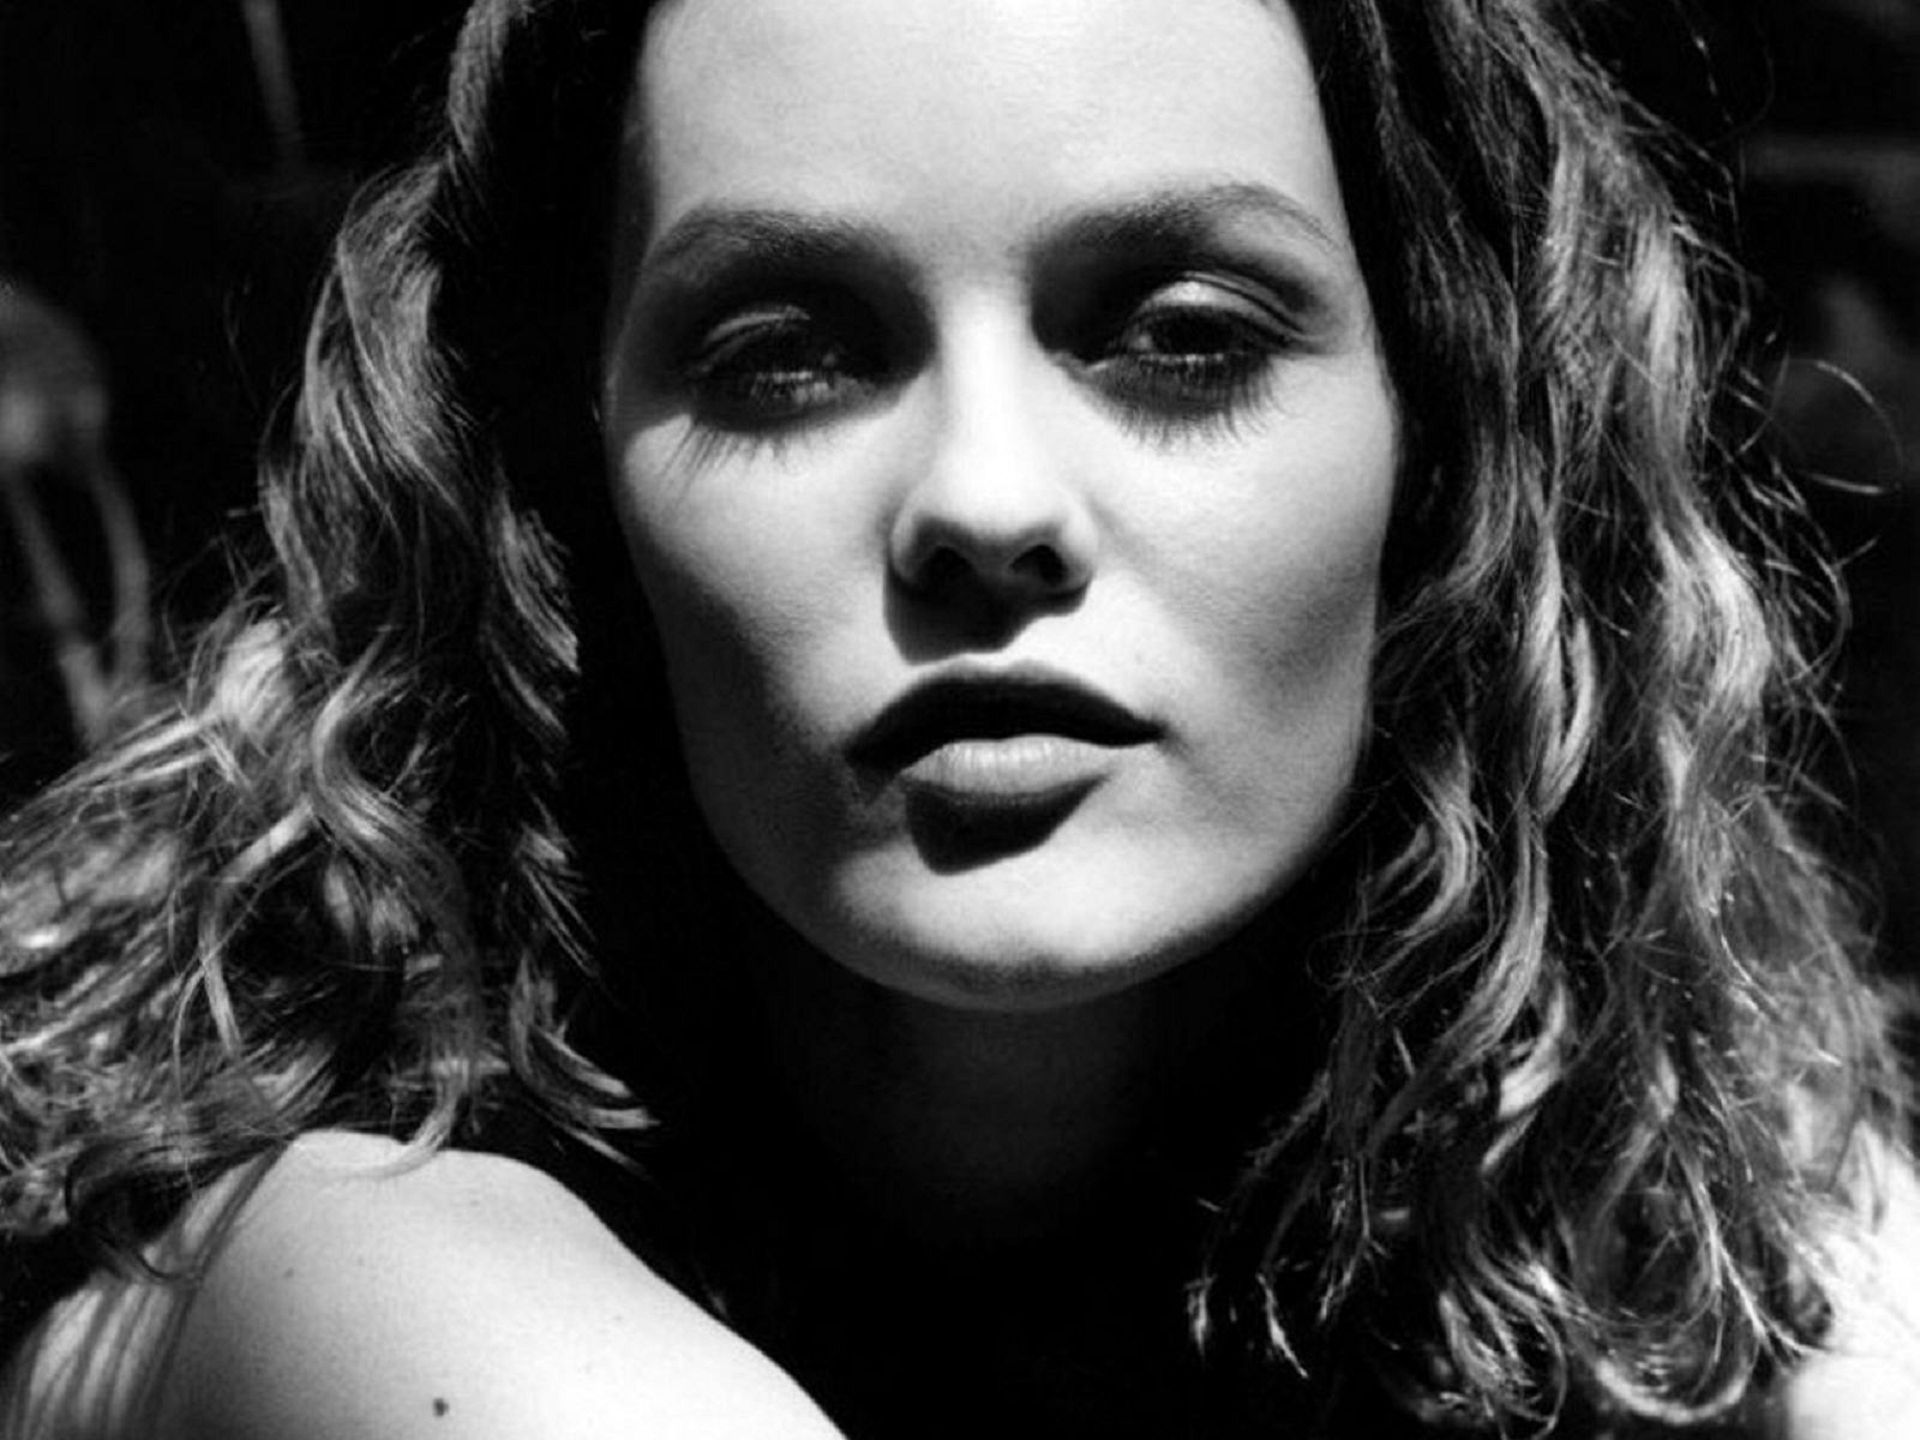 Vanessa Paradis Wallpapers Images Photos Pictures Backgrounds Vanessa Paradis